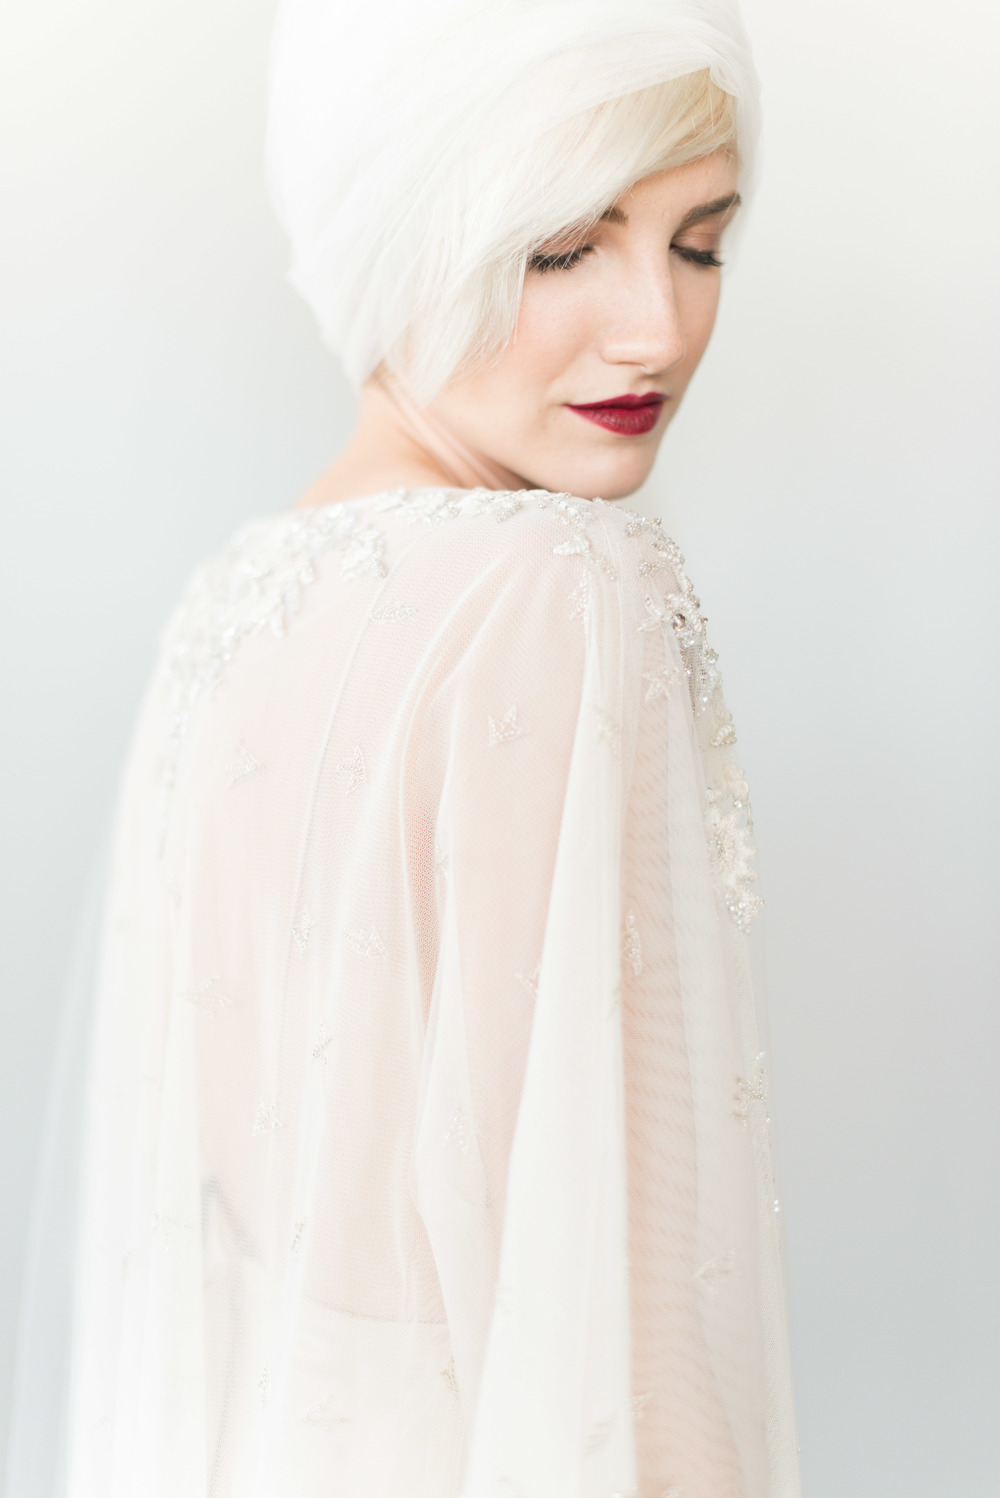 New York Bridal Fashion Week: Rebecca Schoneveld & Hushed Commotion